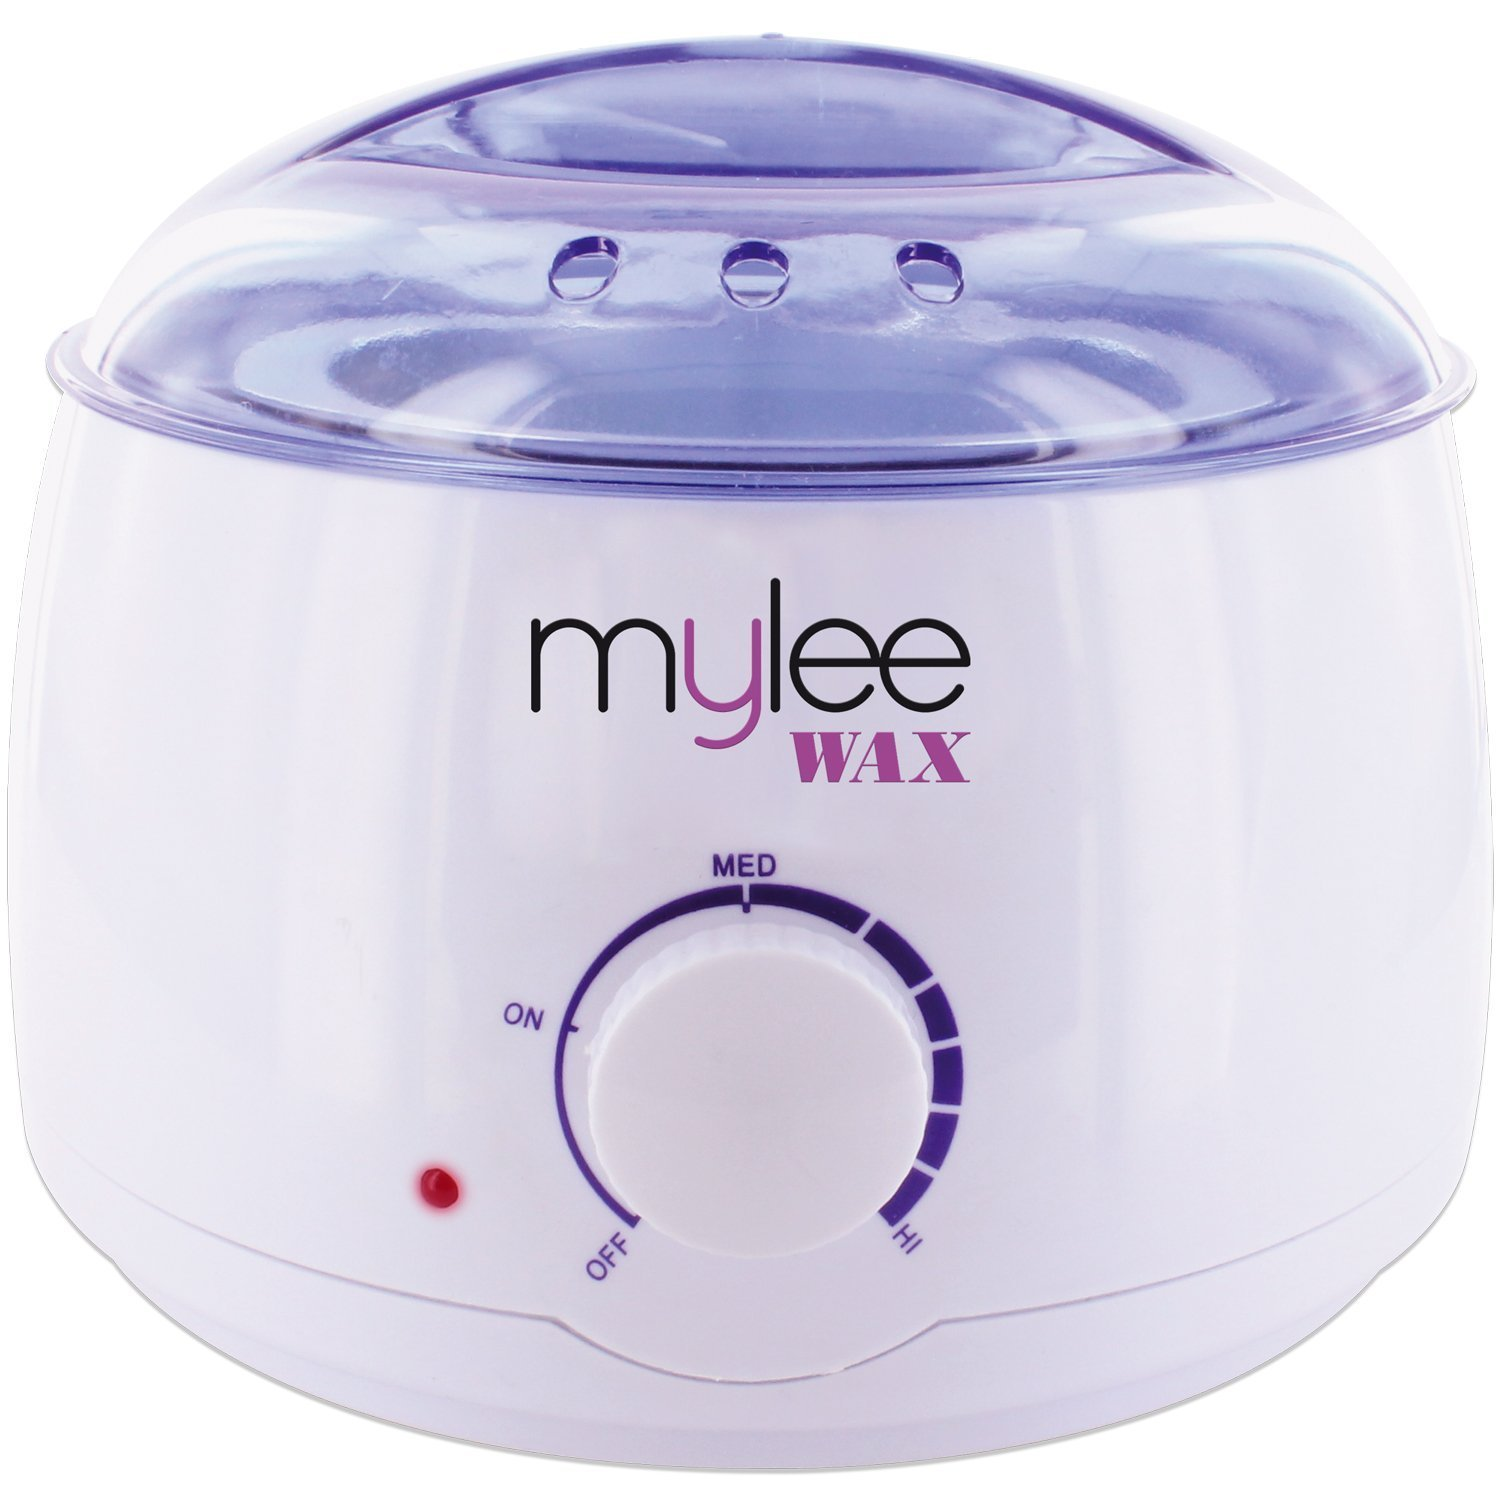 Mylee Professional Electric Wax Heater for All Wax Types, Wax Melter For Depilatory Hair Removal Warmer with Adjustable Temperature and Built-in Thermo Safety Control, Removable 500ml Container